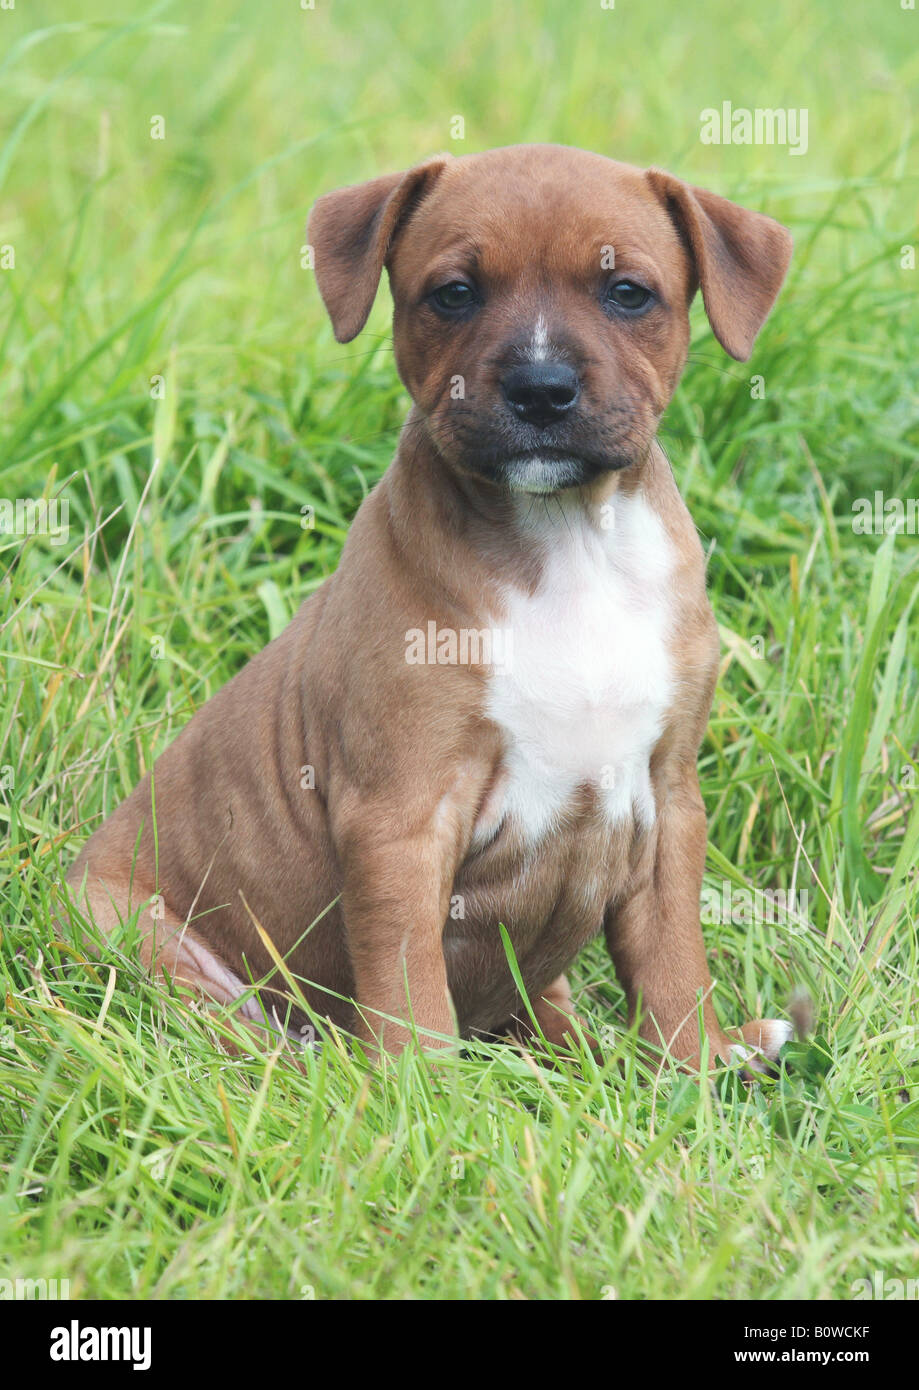 staffordshire bullterrier puppy - sitting on meadow - Stock Image